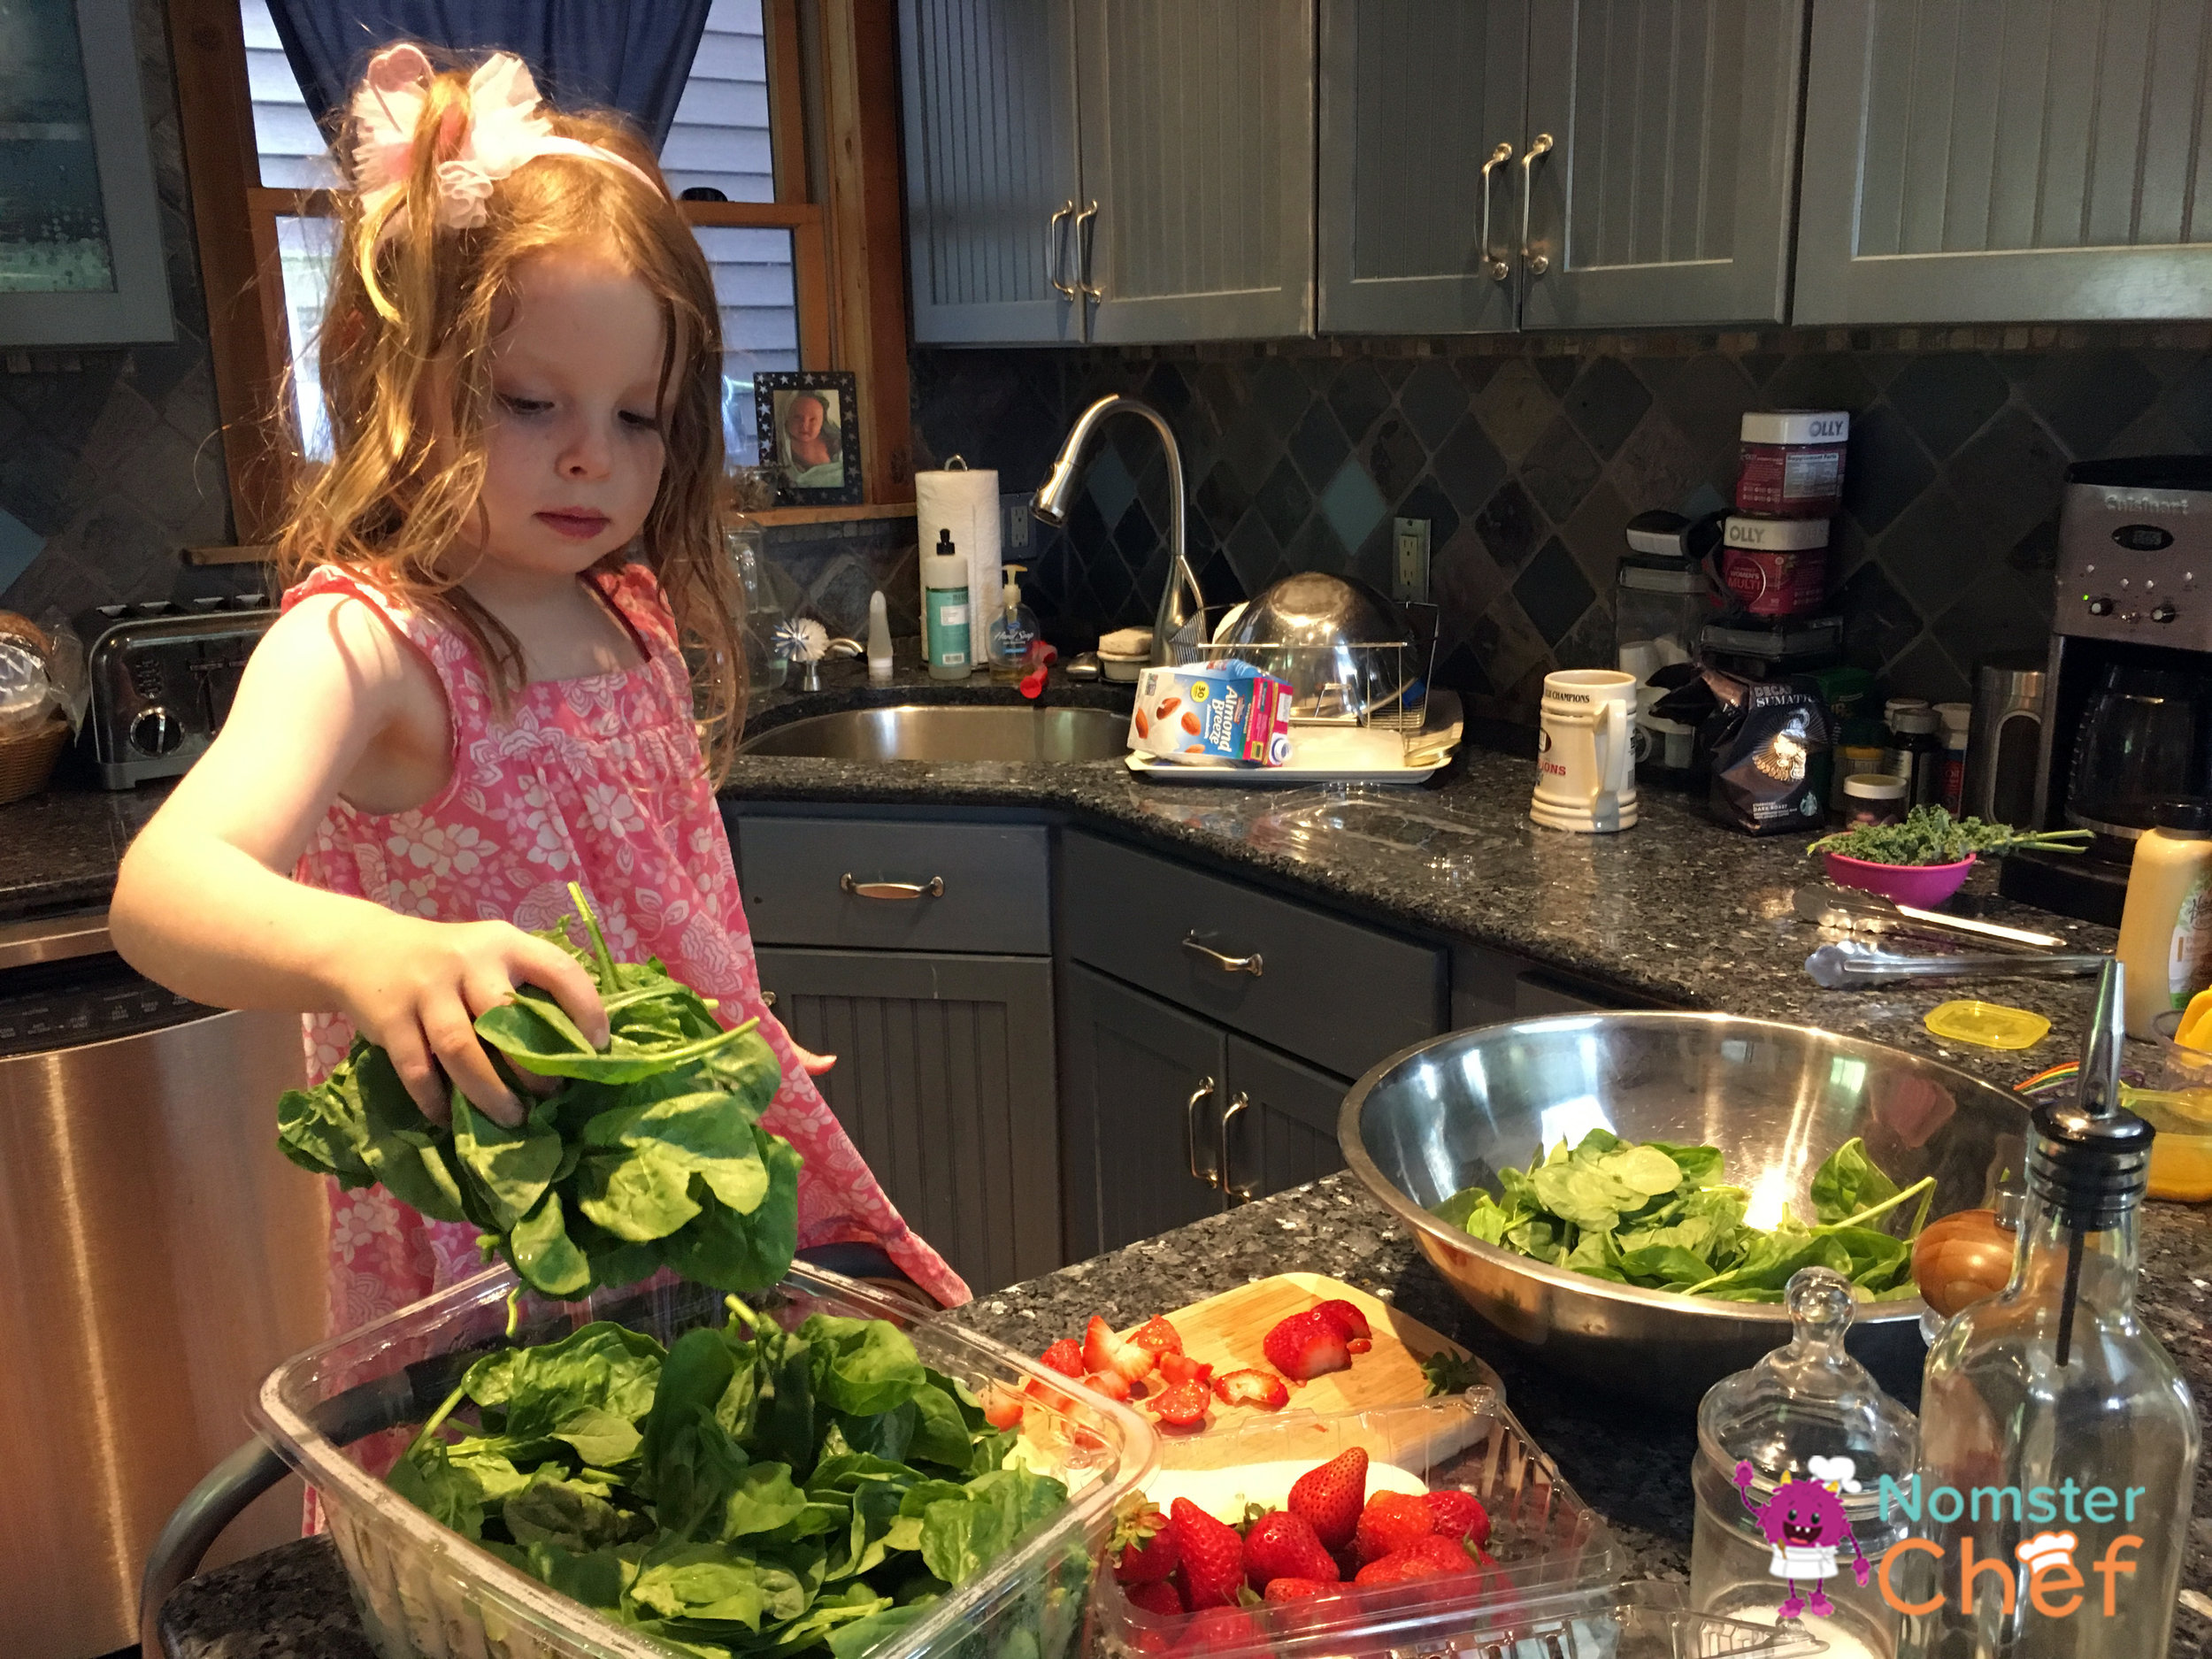 Placing ingredients in the bowl.